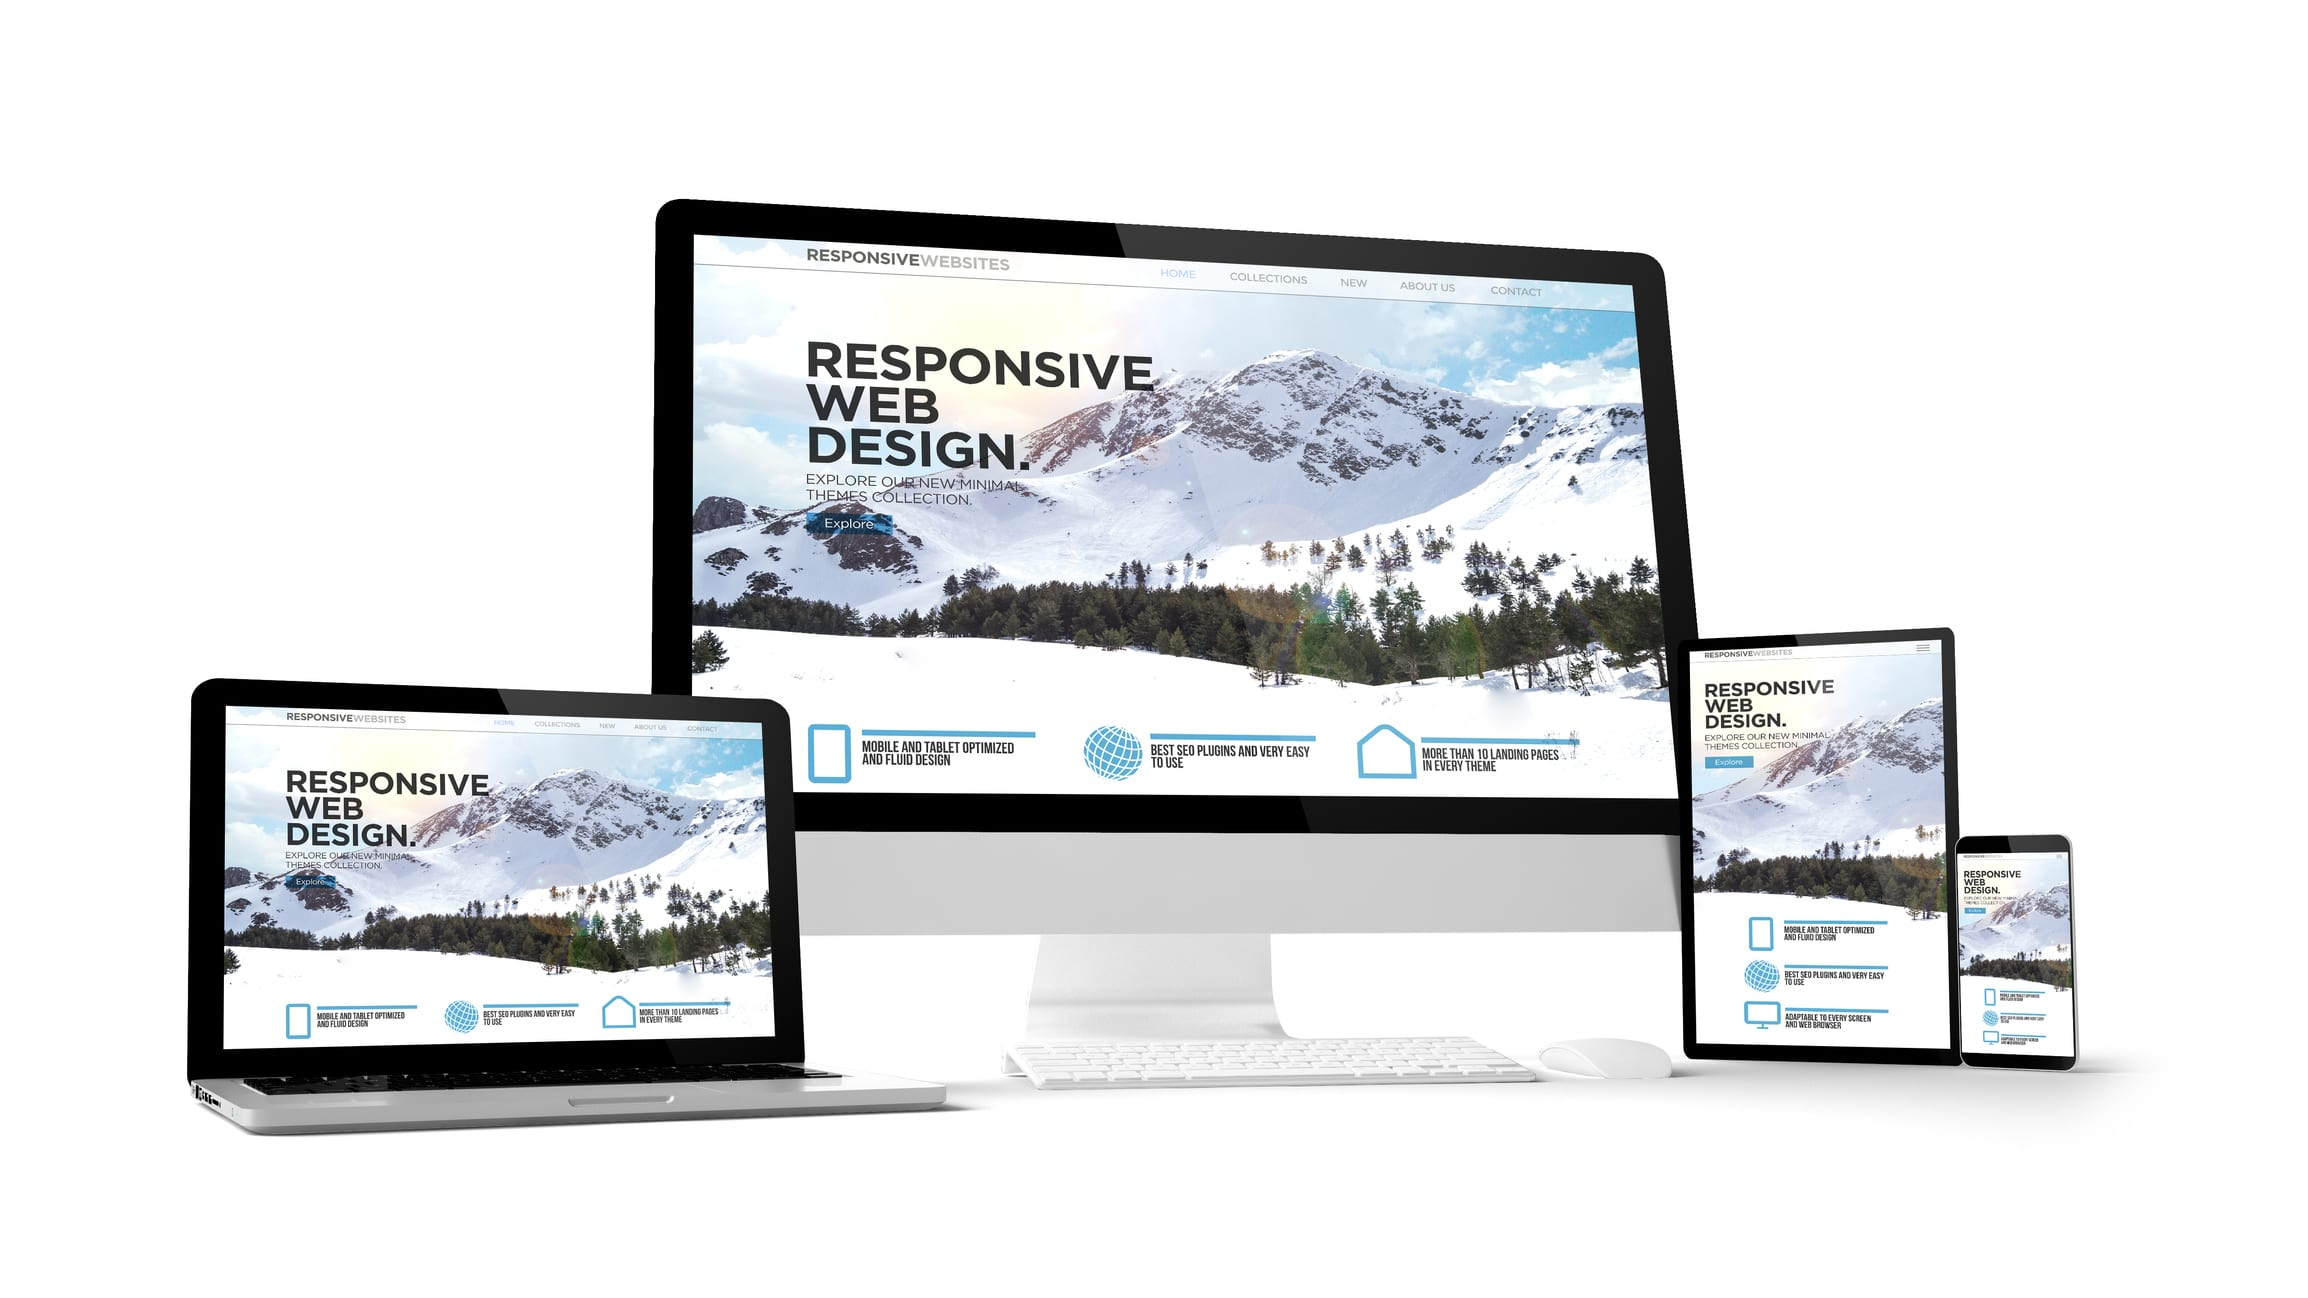 responsive for all web devices 2 true interactive cape coral